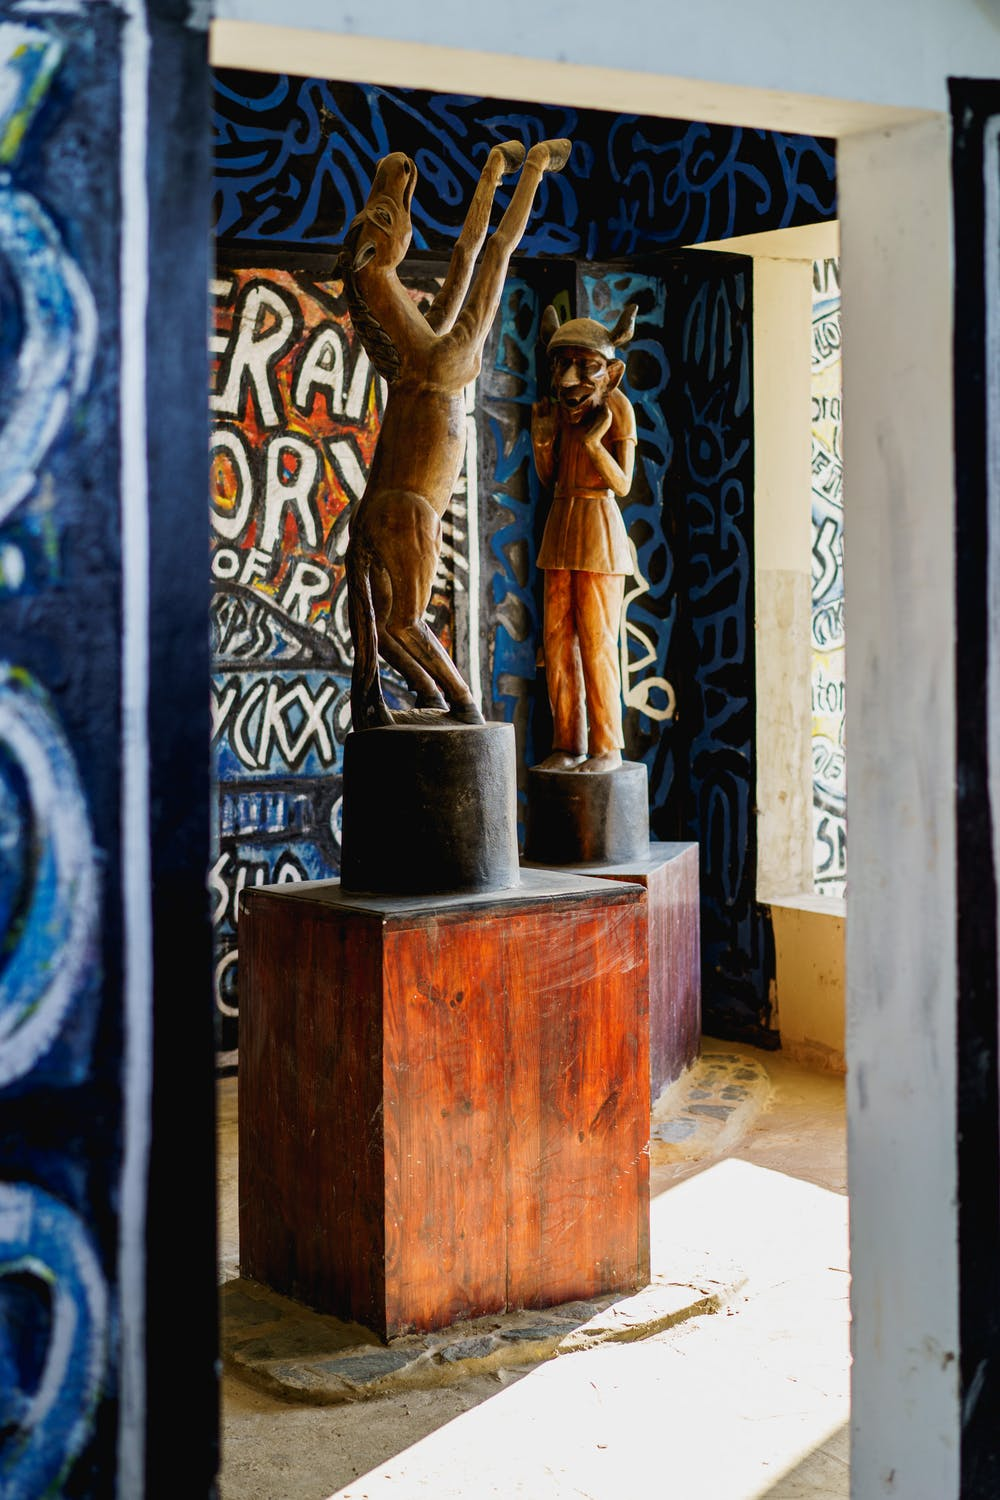 Wooden statues on pedestals in a open air room at Castillo Mundo King covered in wall art and hand painted murals